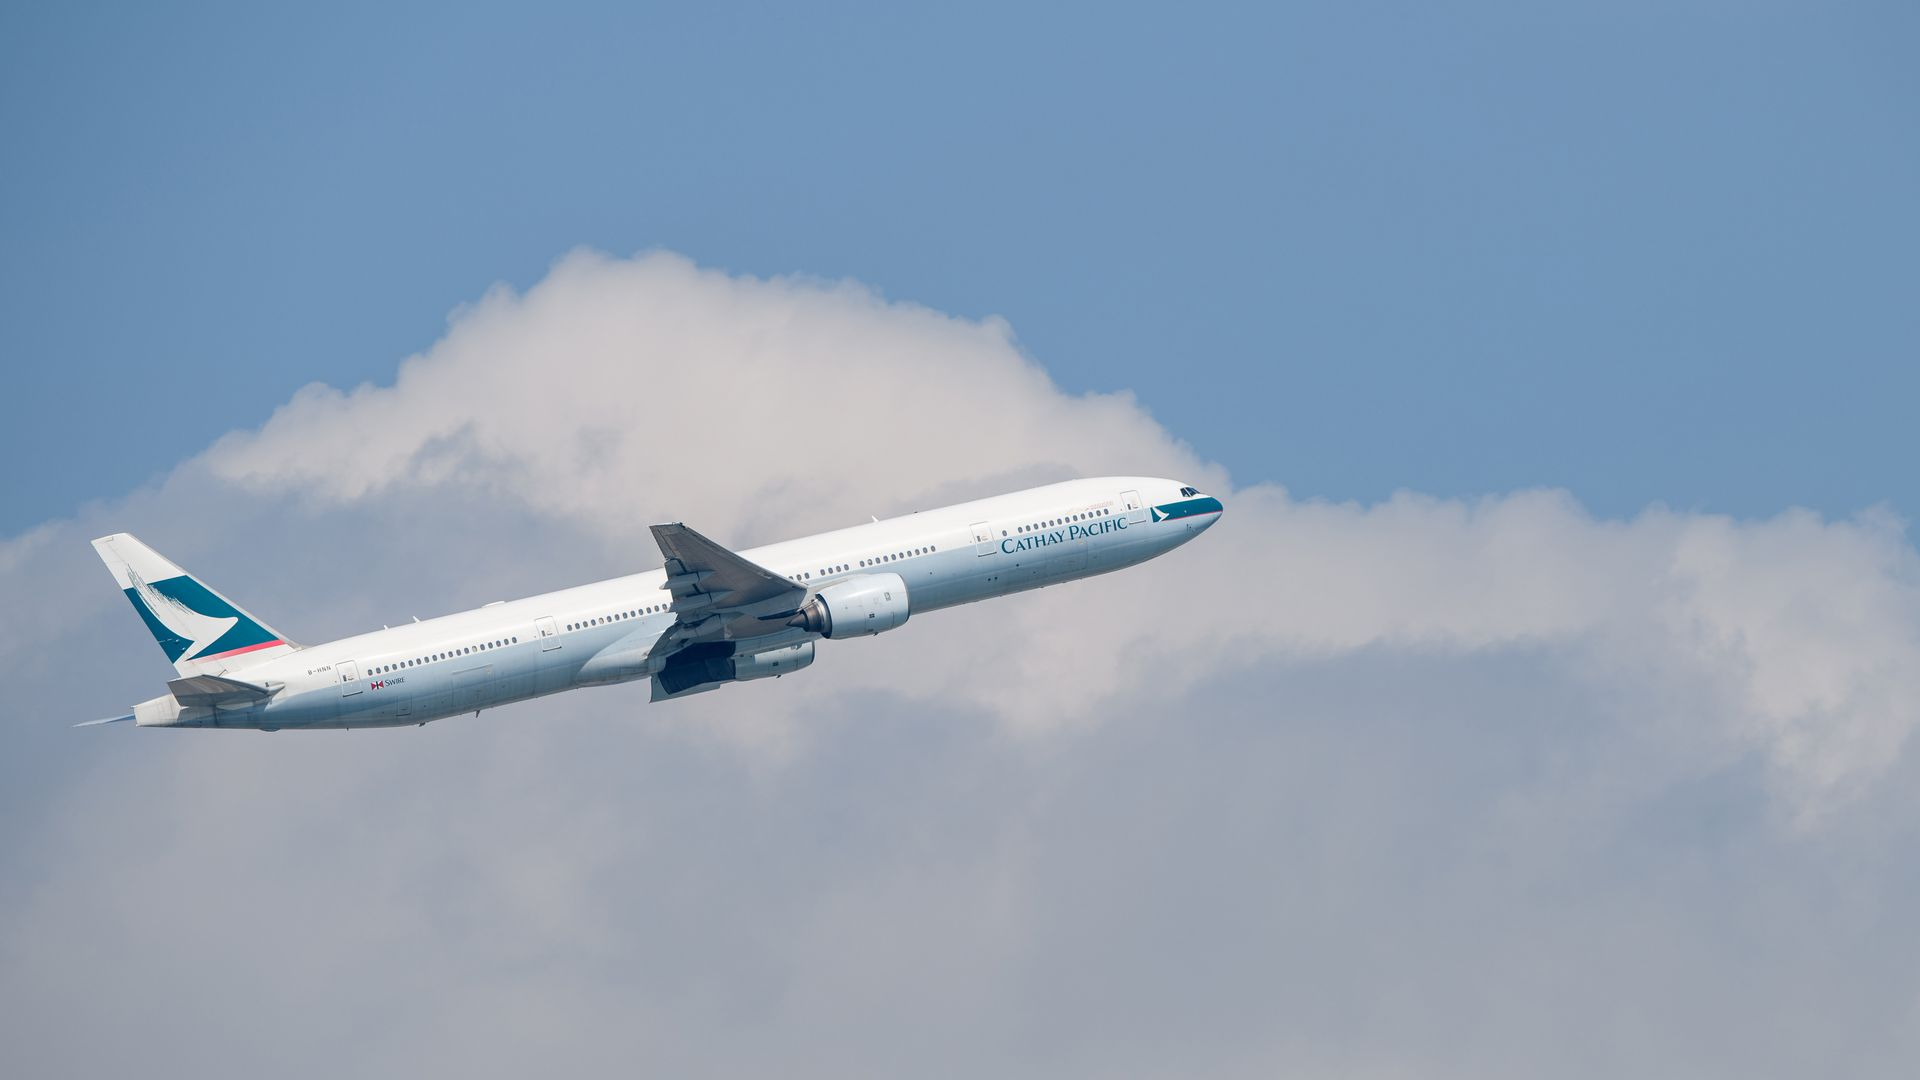 Cathay Pacific airliner